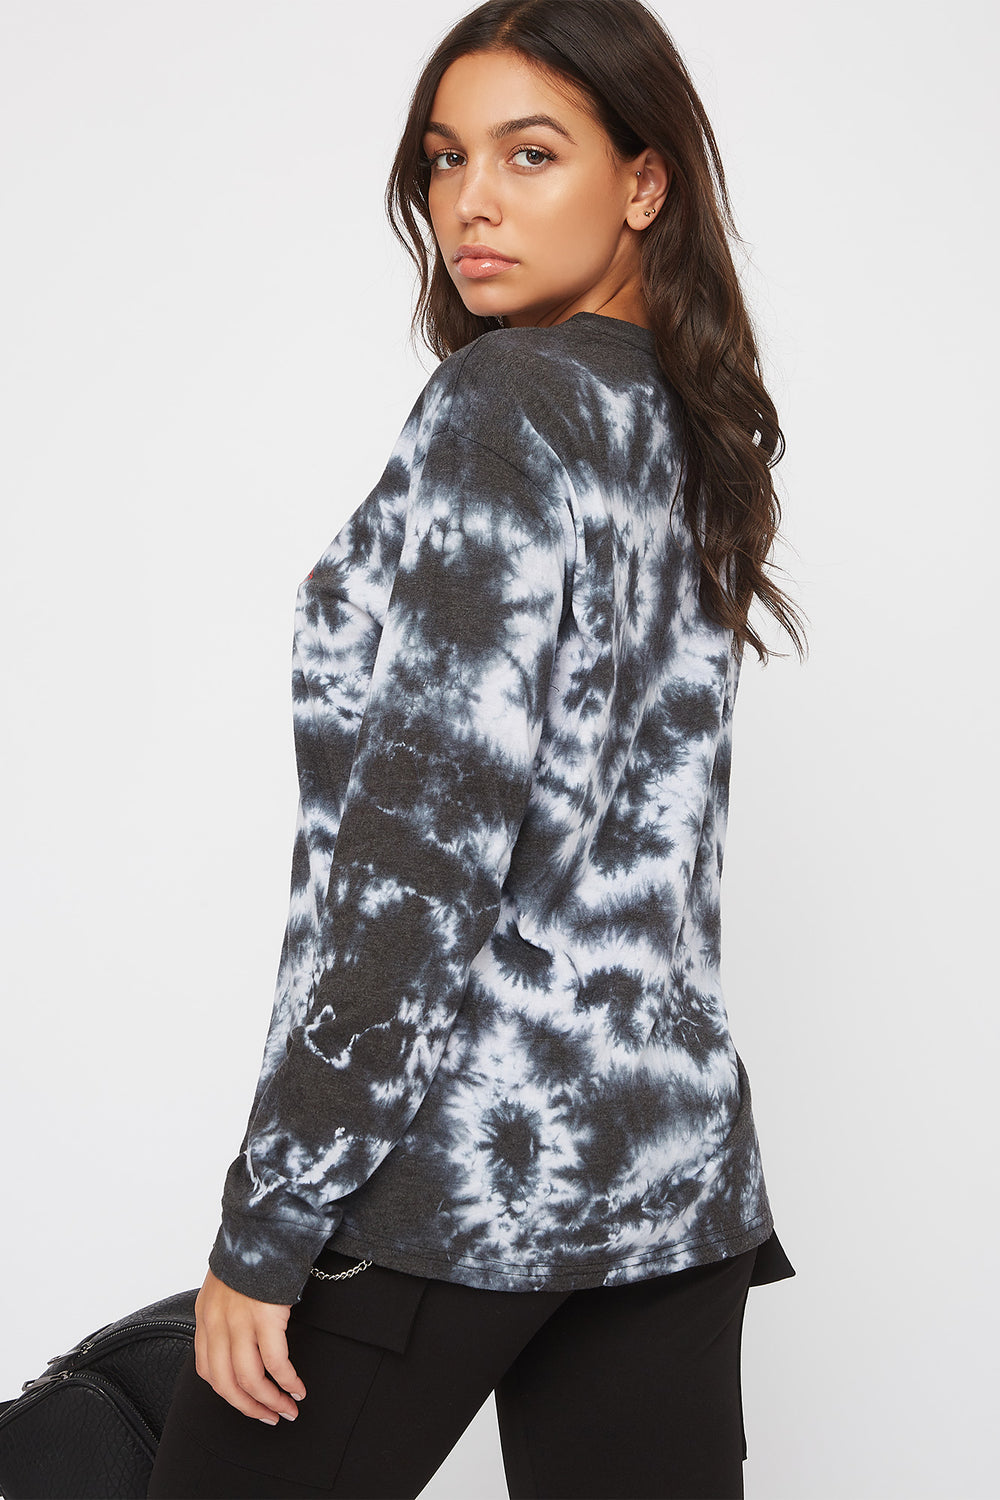 Tie Dye ACDC Long Sleeve Shirt Black with White